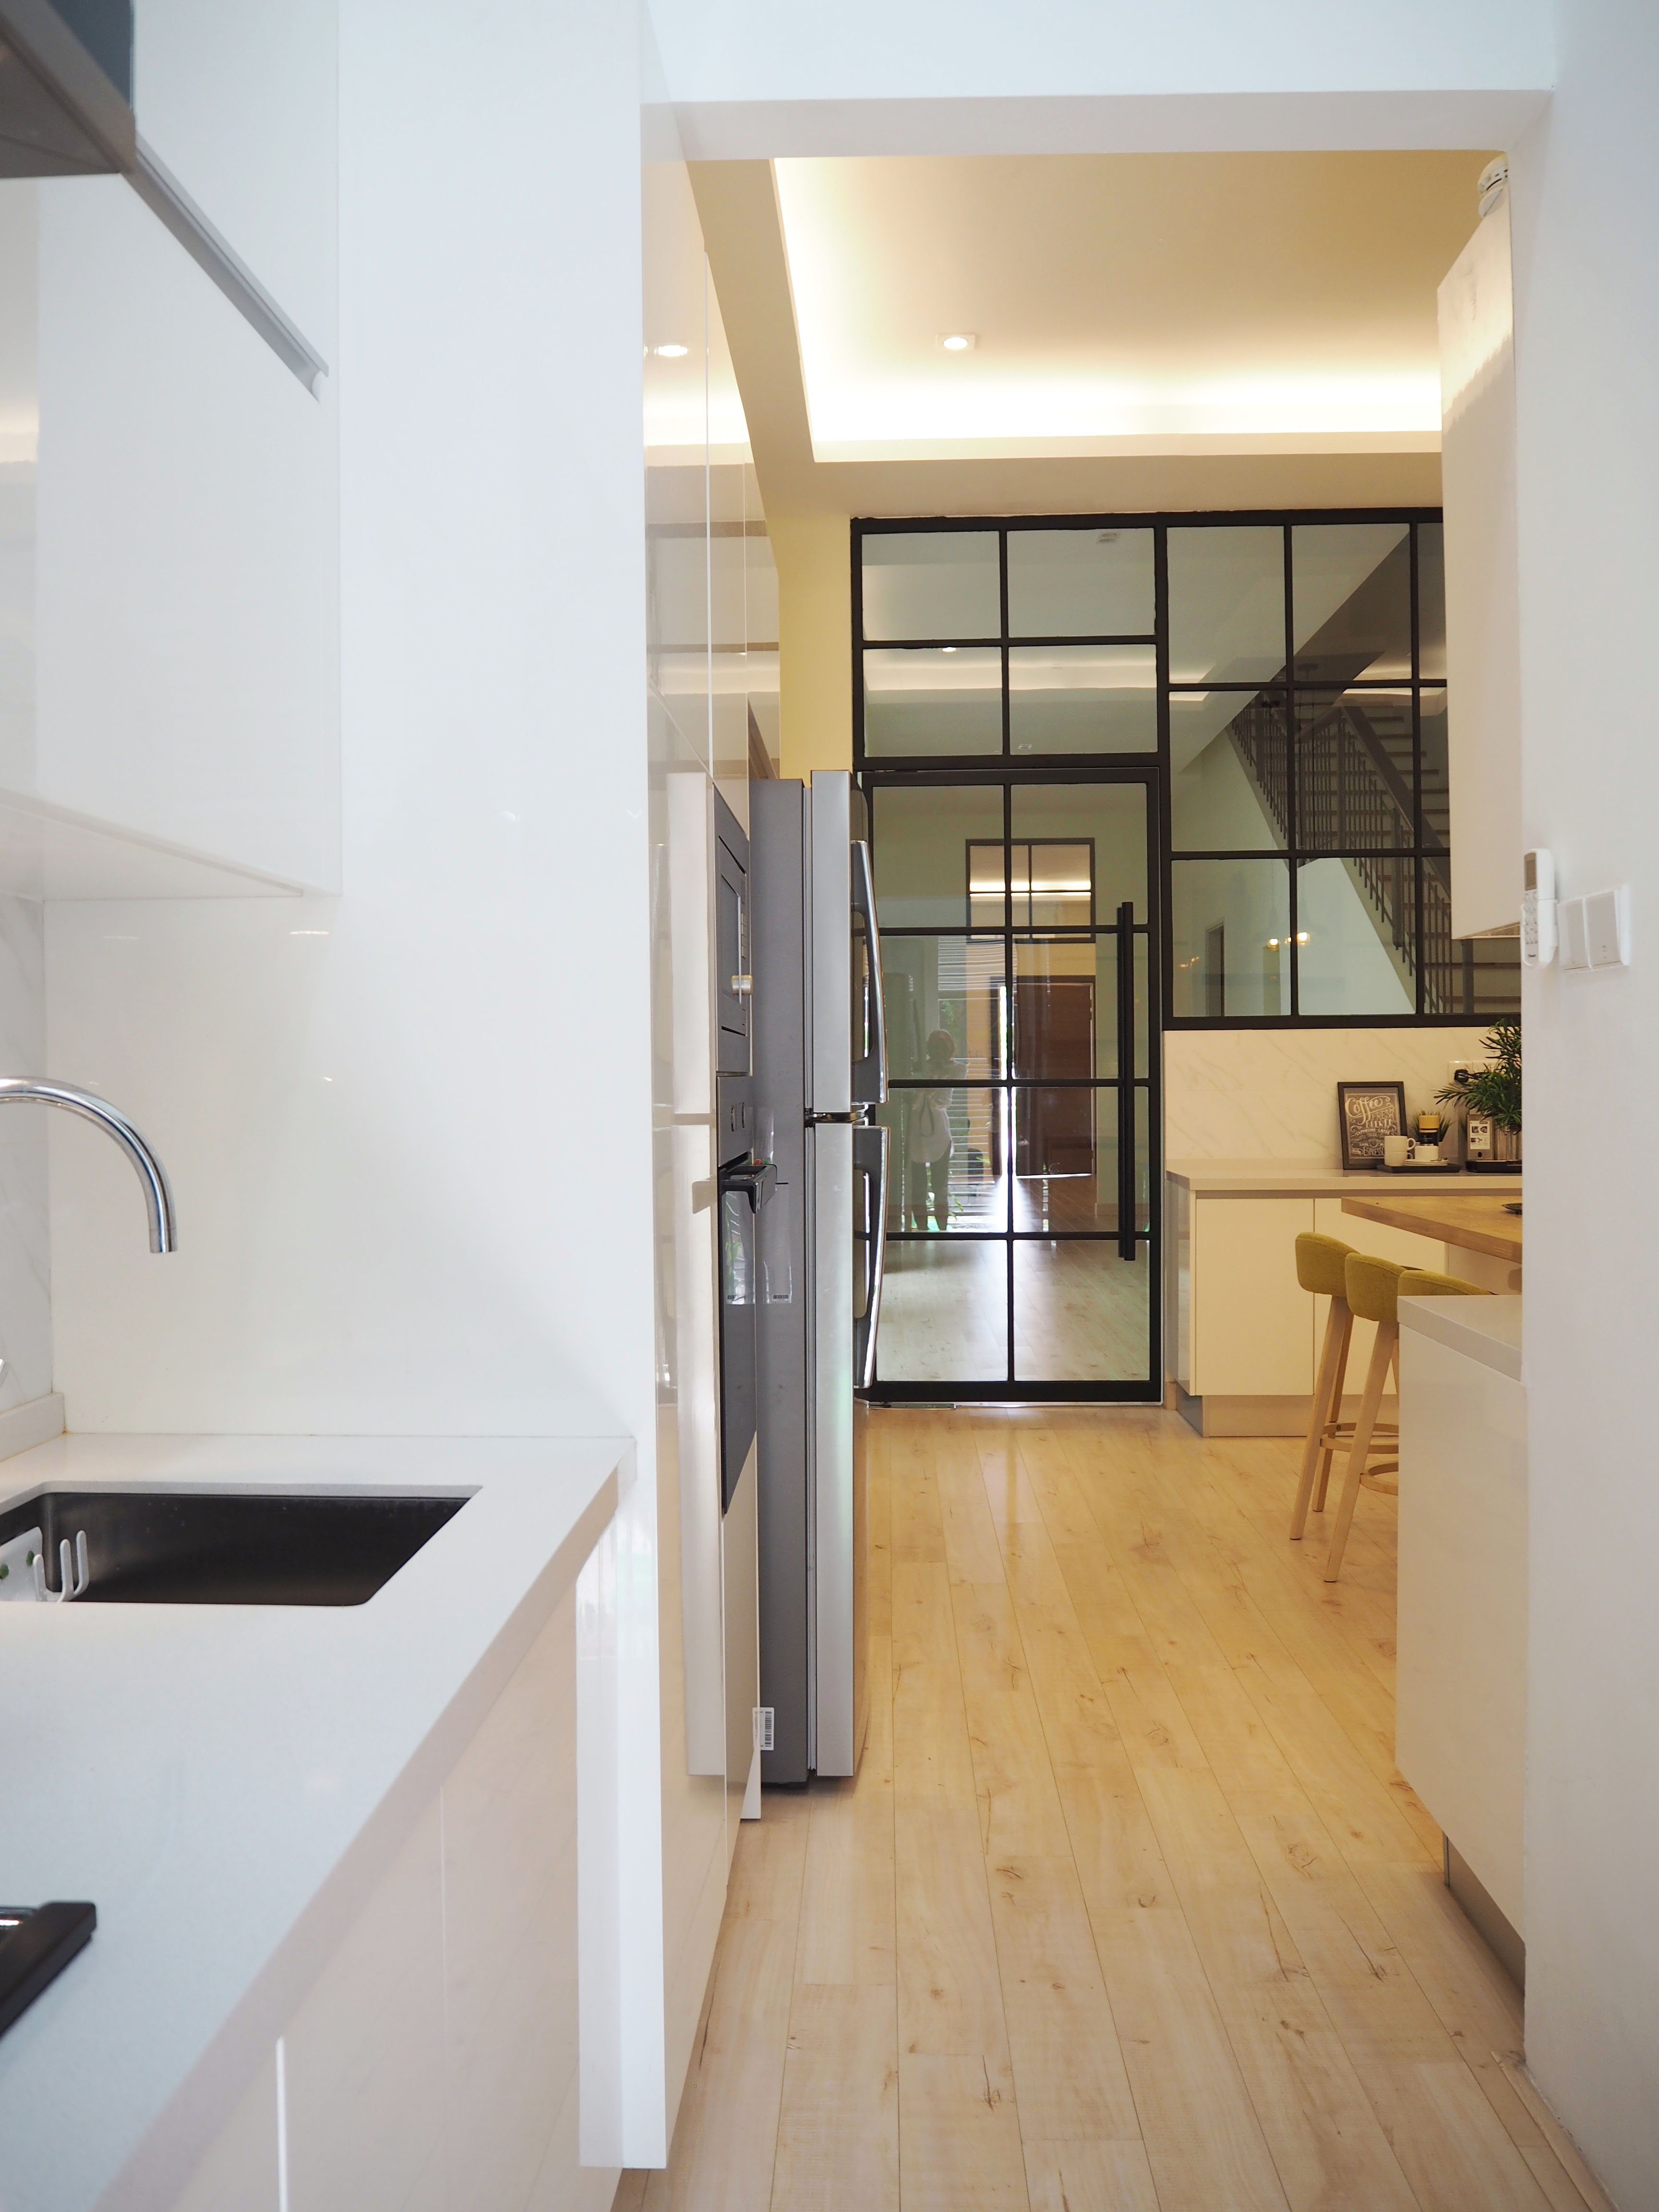 Superlink Terrace at Temasya Citra, Glenmarie by Meridian Inspiration Sdn Bhd - Link house / Townhouse Scandinavian Modern Bedroom Bathroom Kitchen Dining Above 2400 sqft - Recommend.my